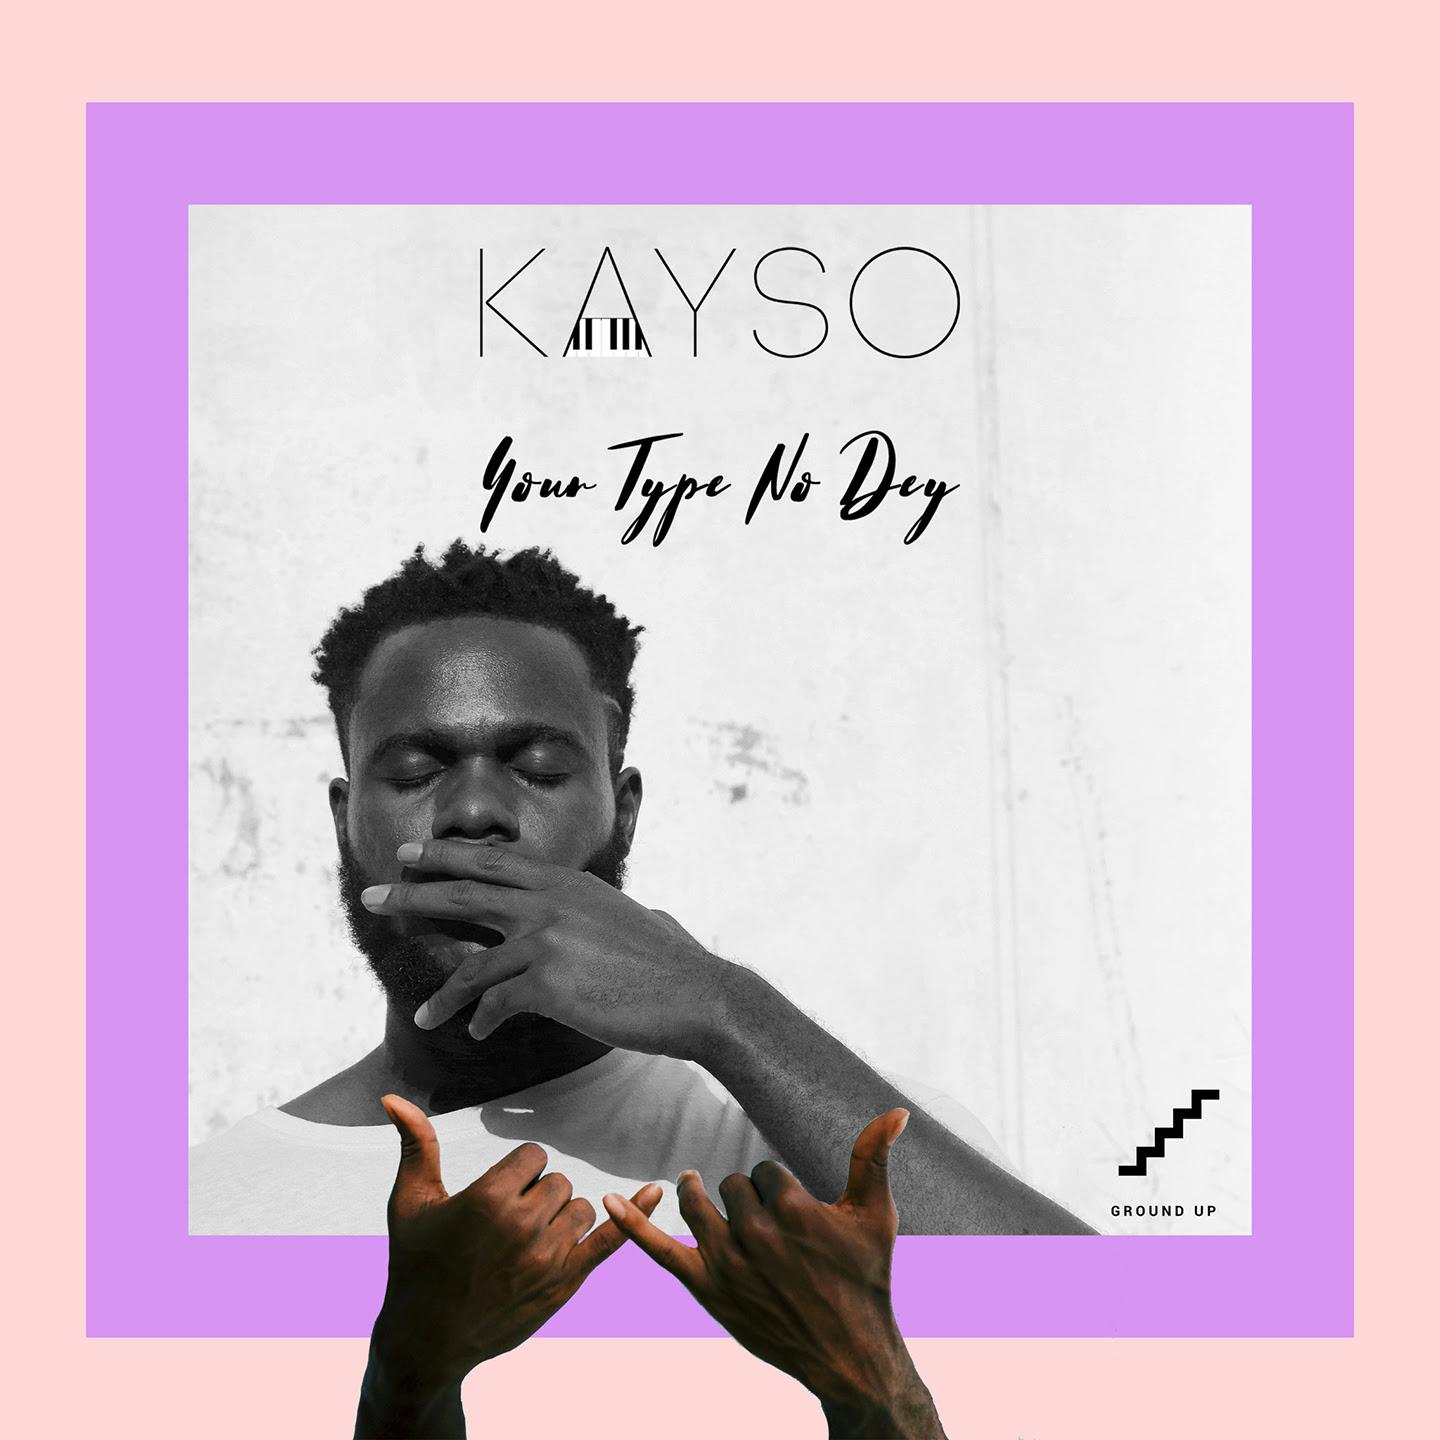 Image result for your type no dey kayso